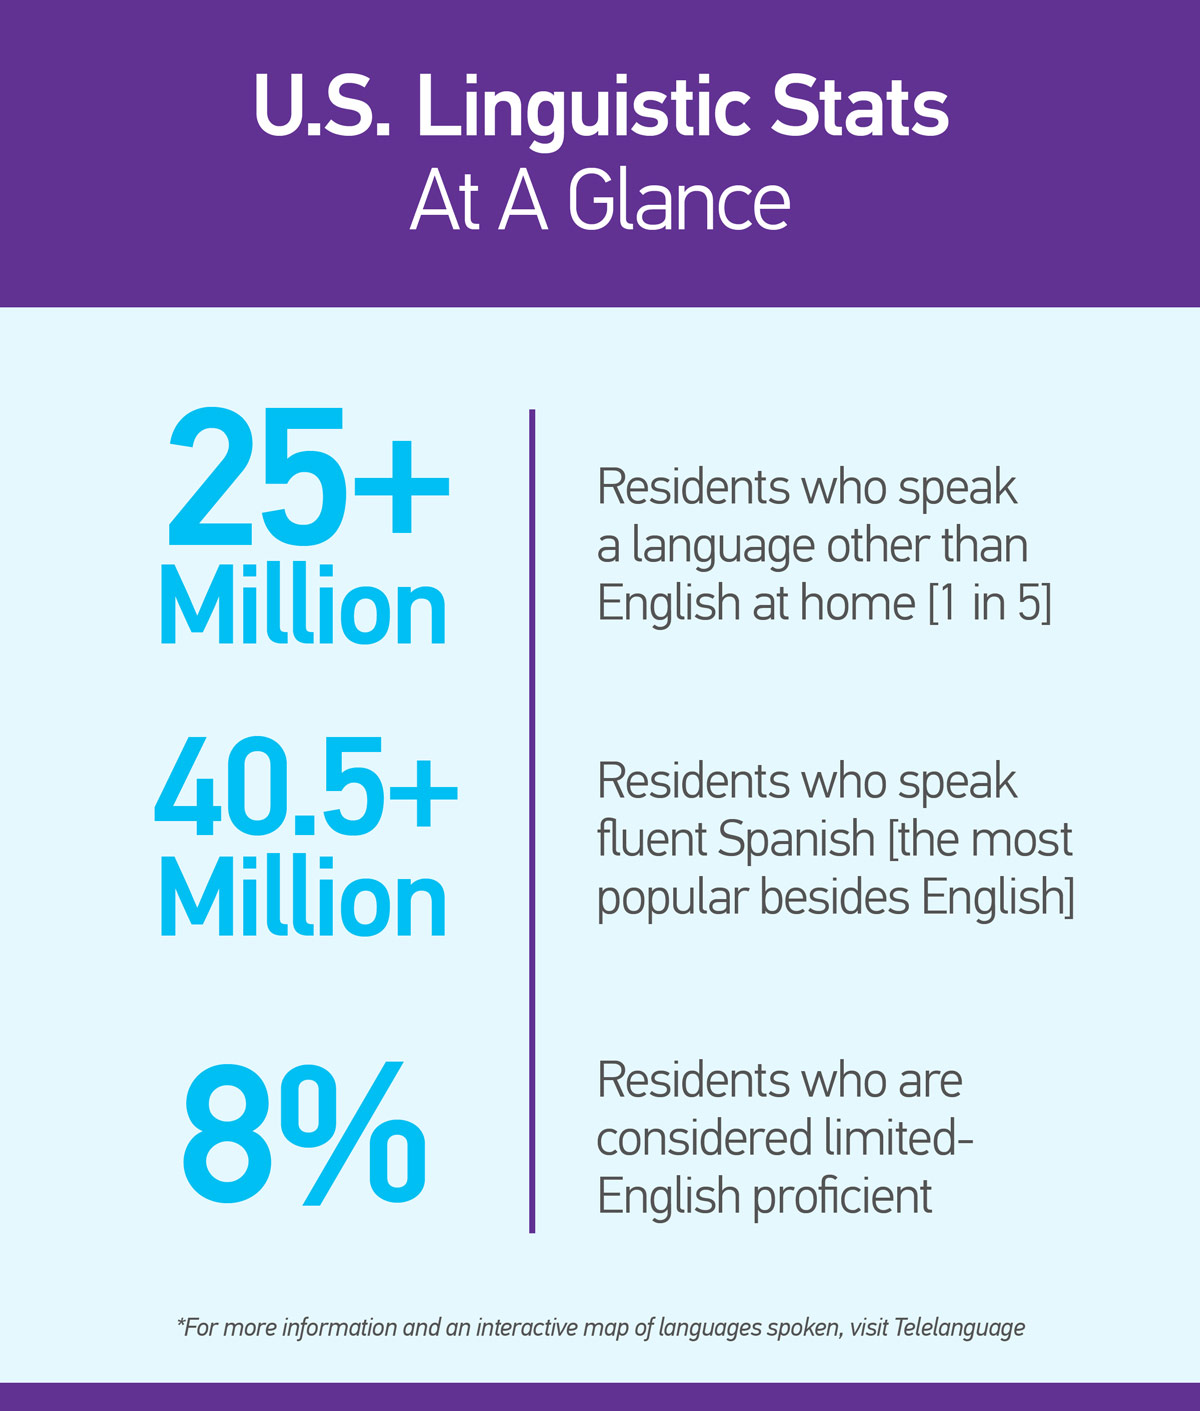 U.S. Linguistic Stats At A Glance